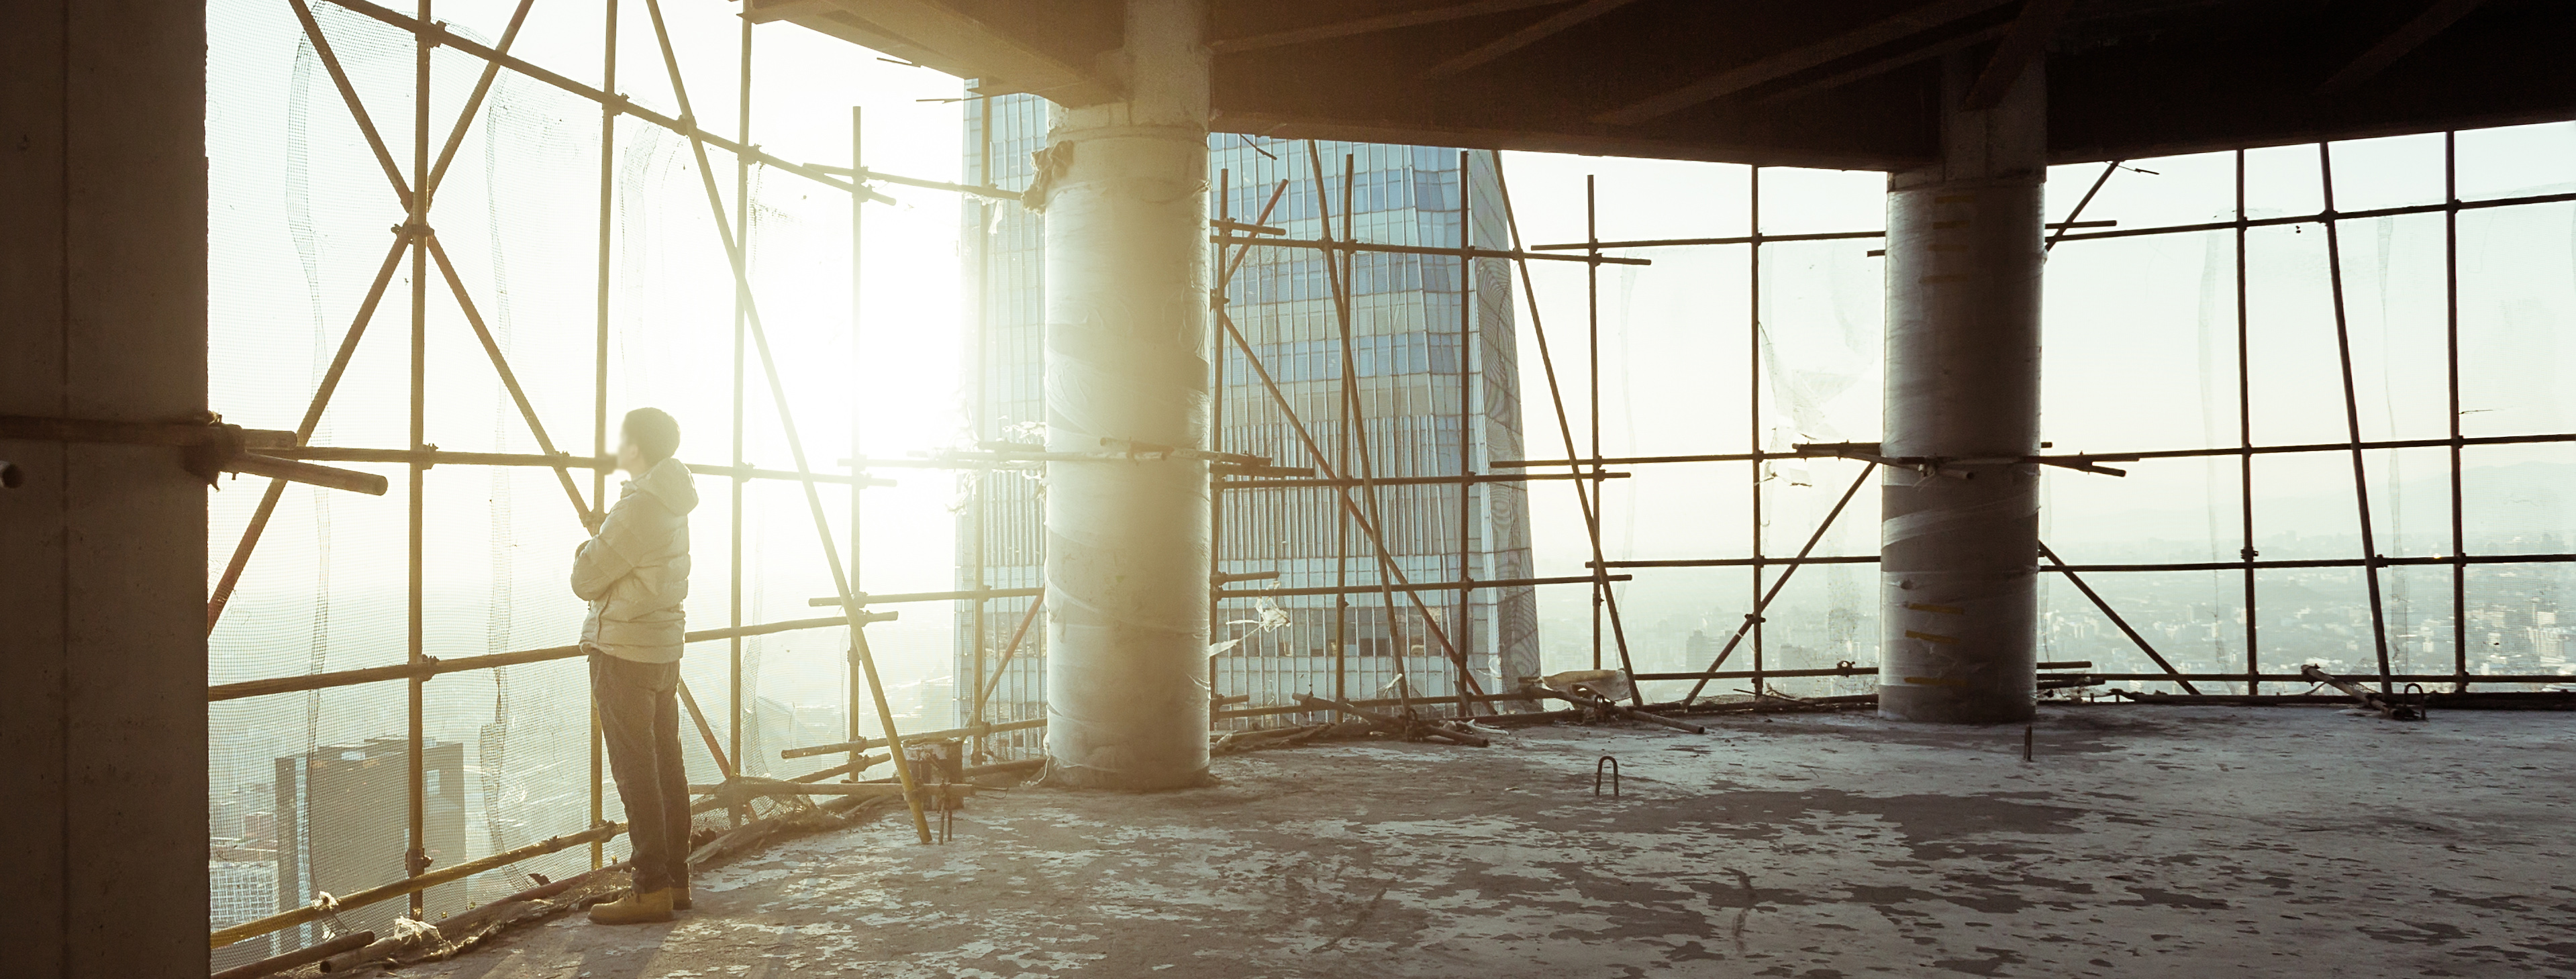 The Danger in Terminating Building Contracts for Delay